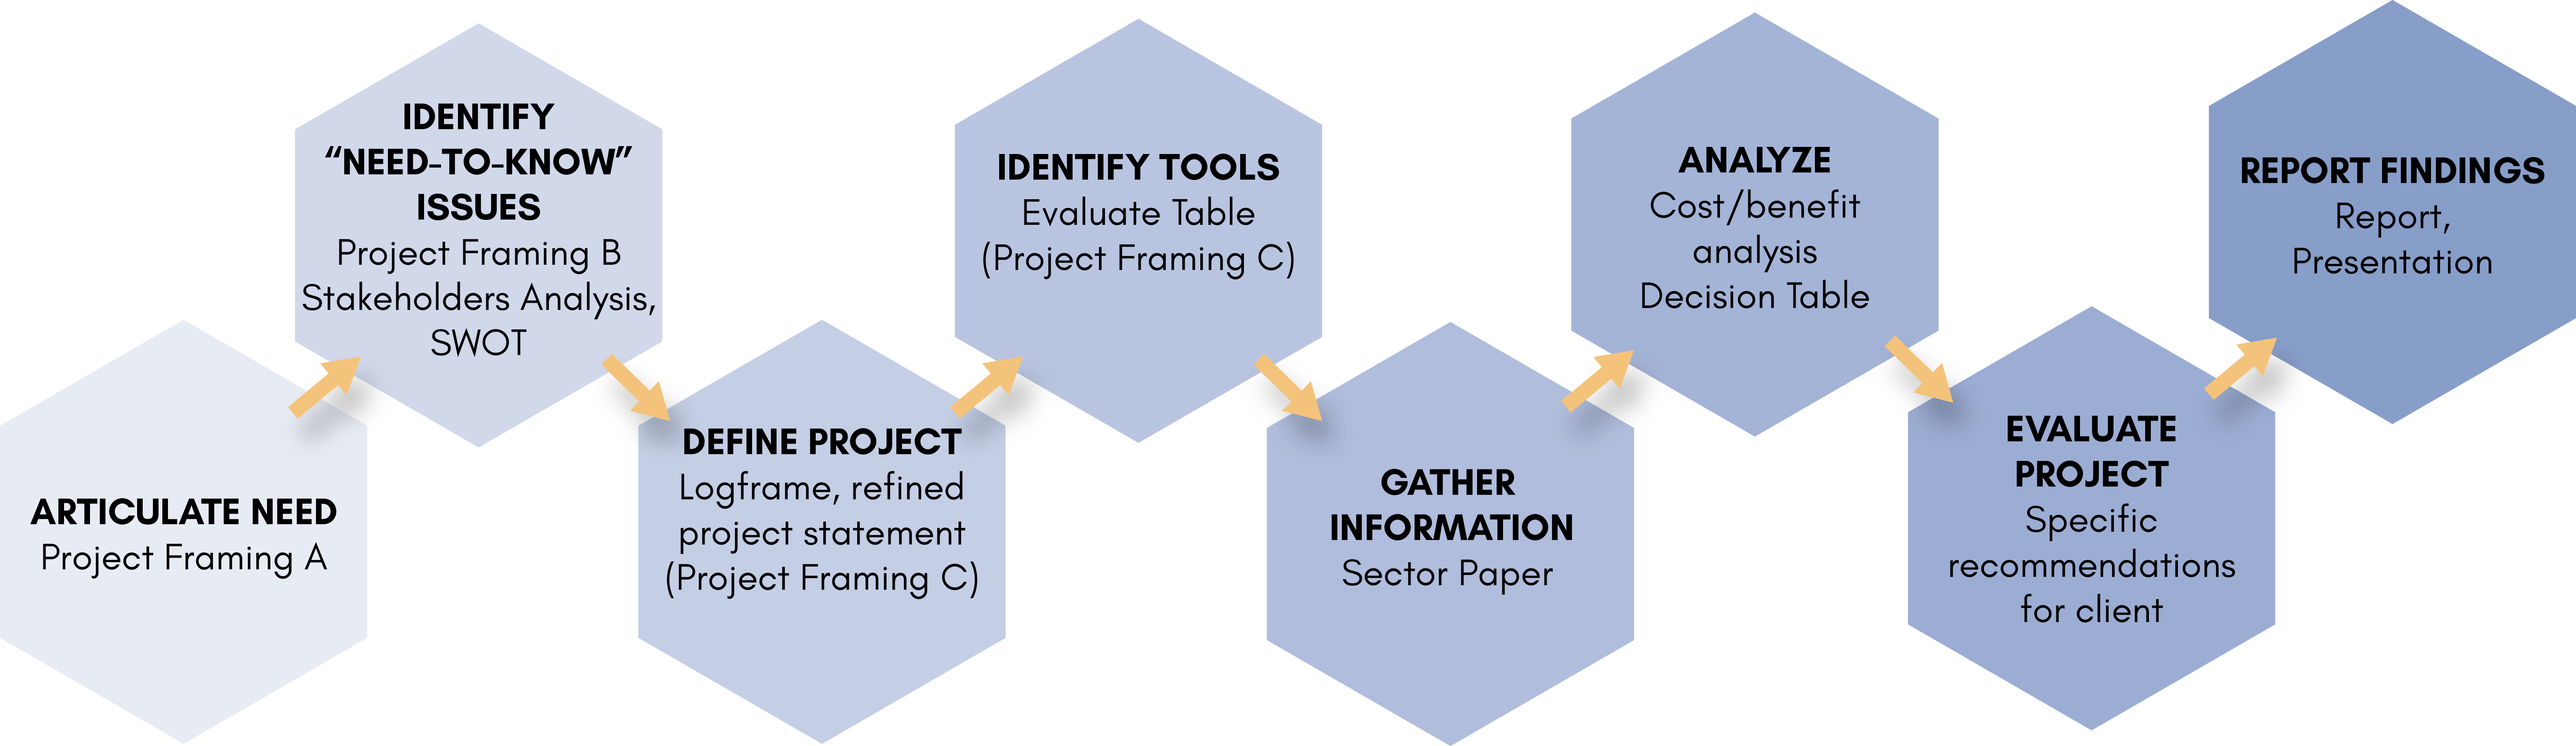 Diagram illustrating the organization of the feasibility studies deliverables